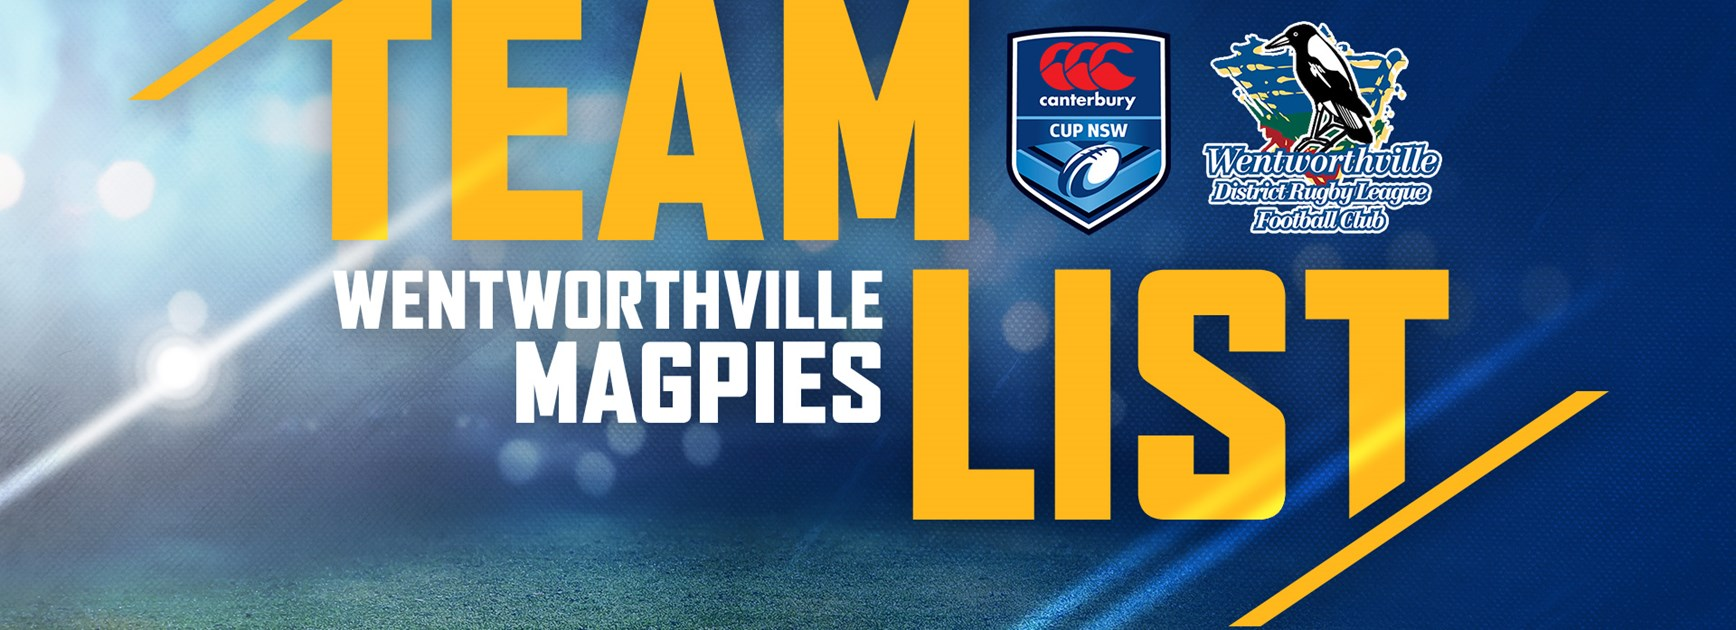 Wentworthville Magpies v Knights, Canterbury Cup Team List